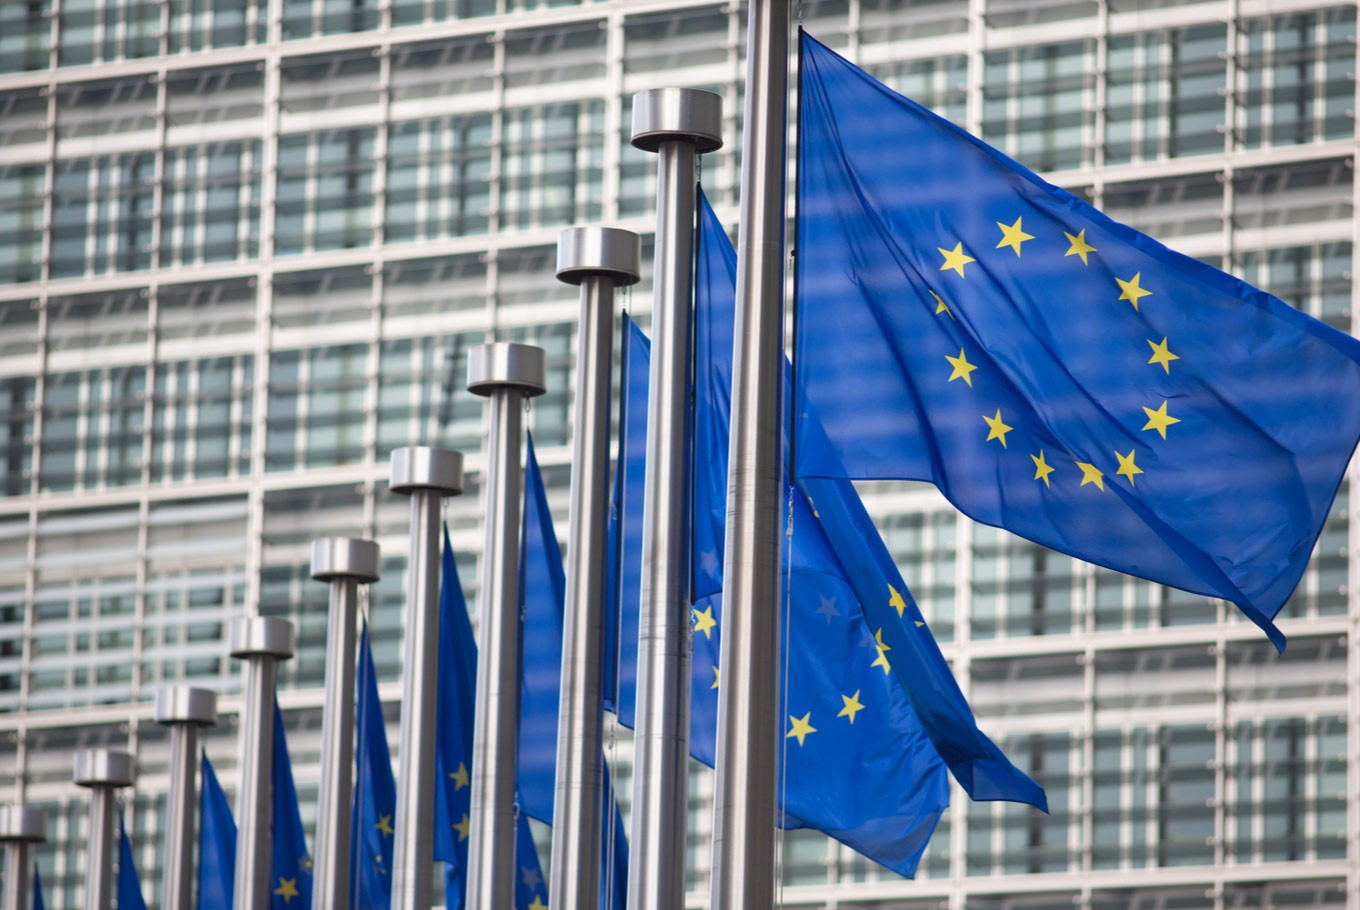 EU unveils ethics guidelines for Artificial Intelligence